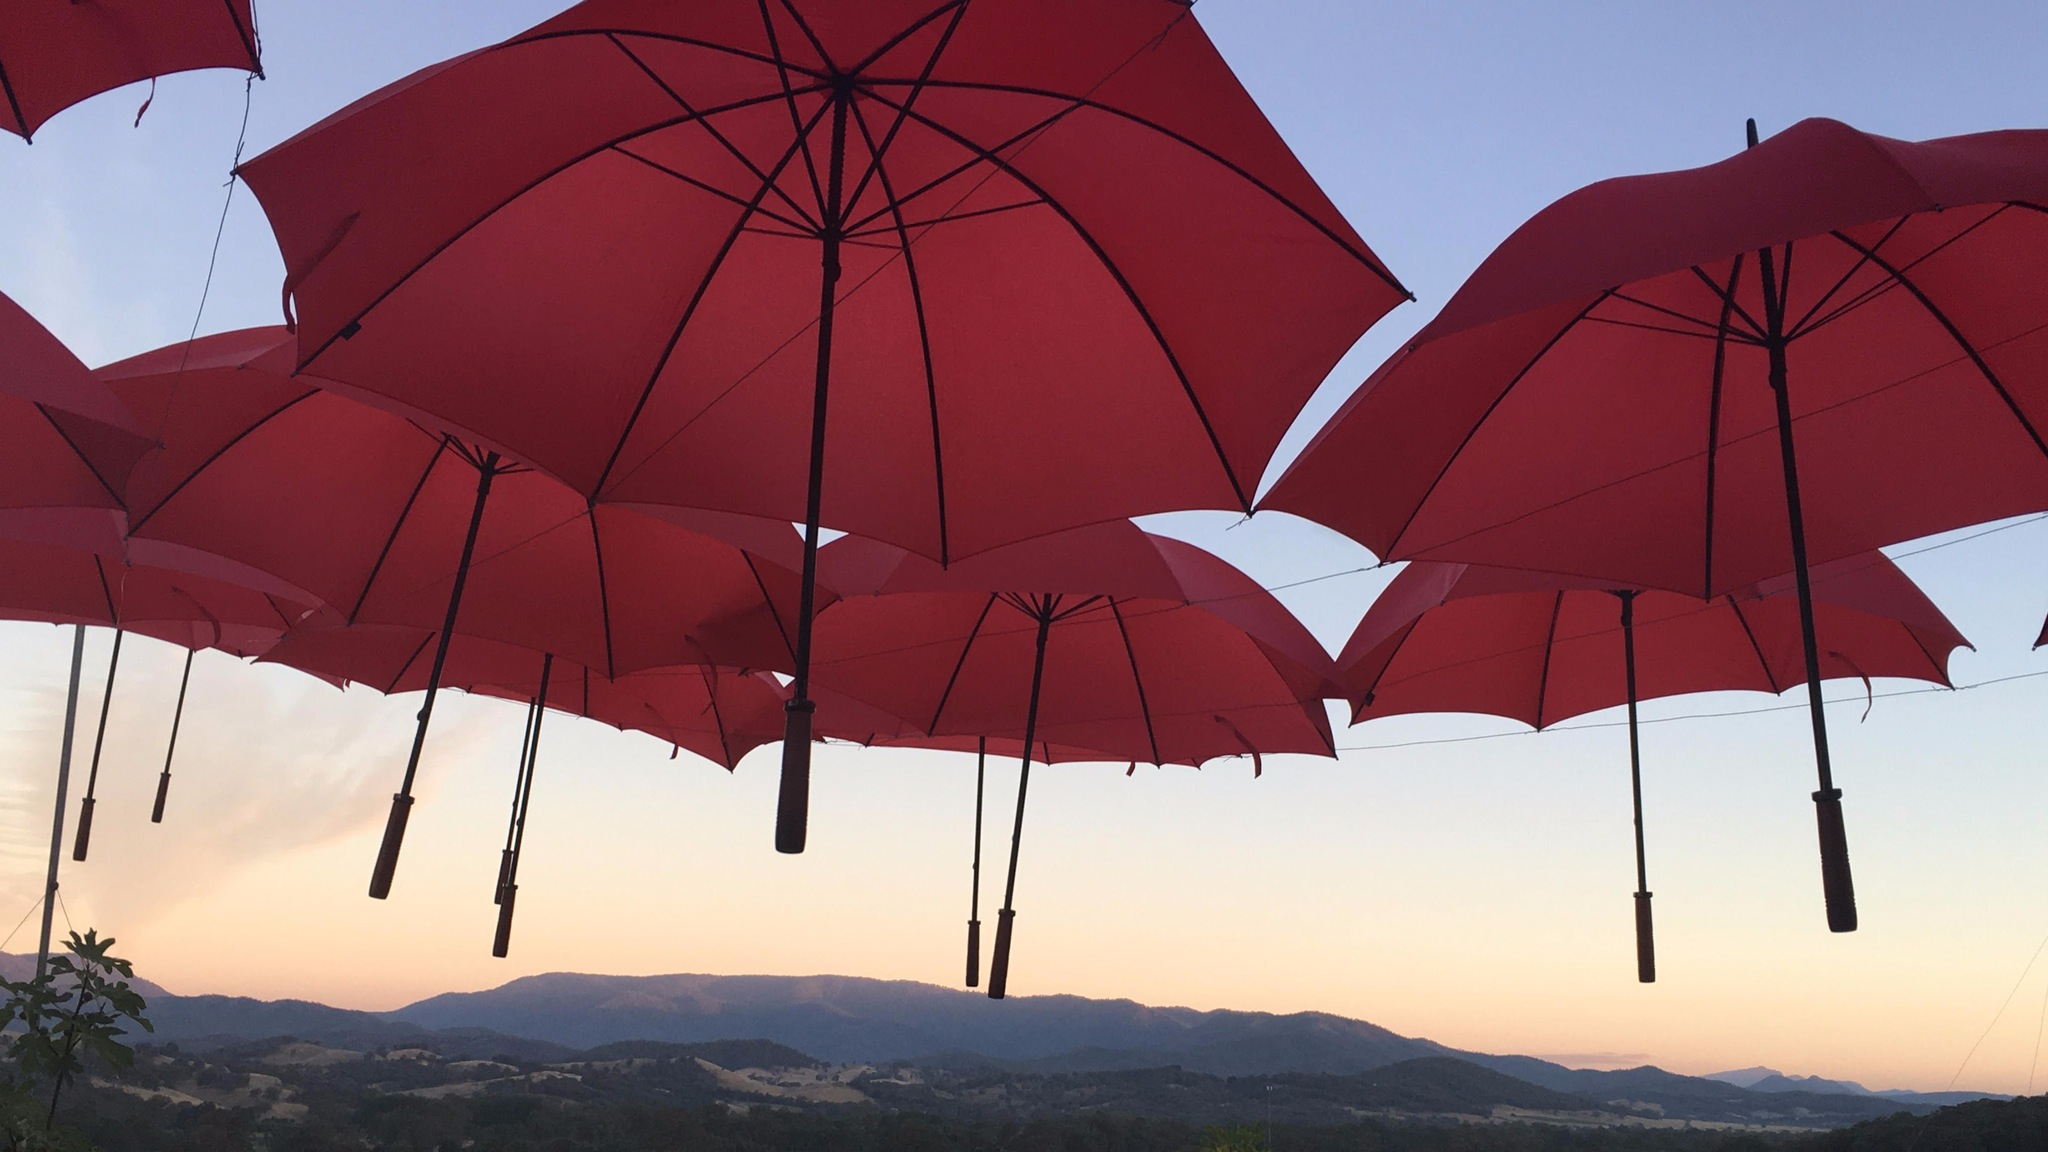 Red Umbrella Sky